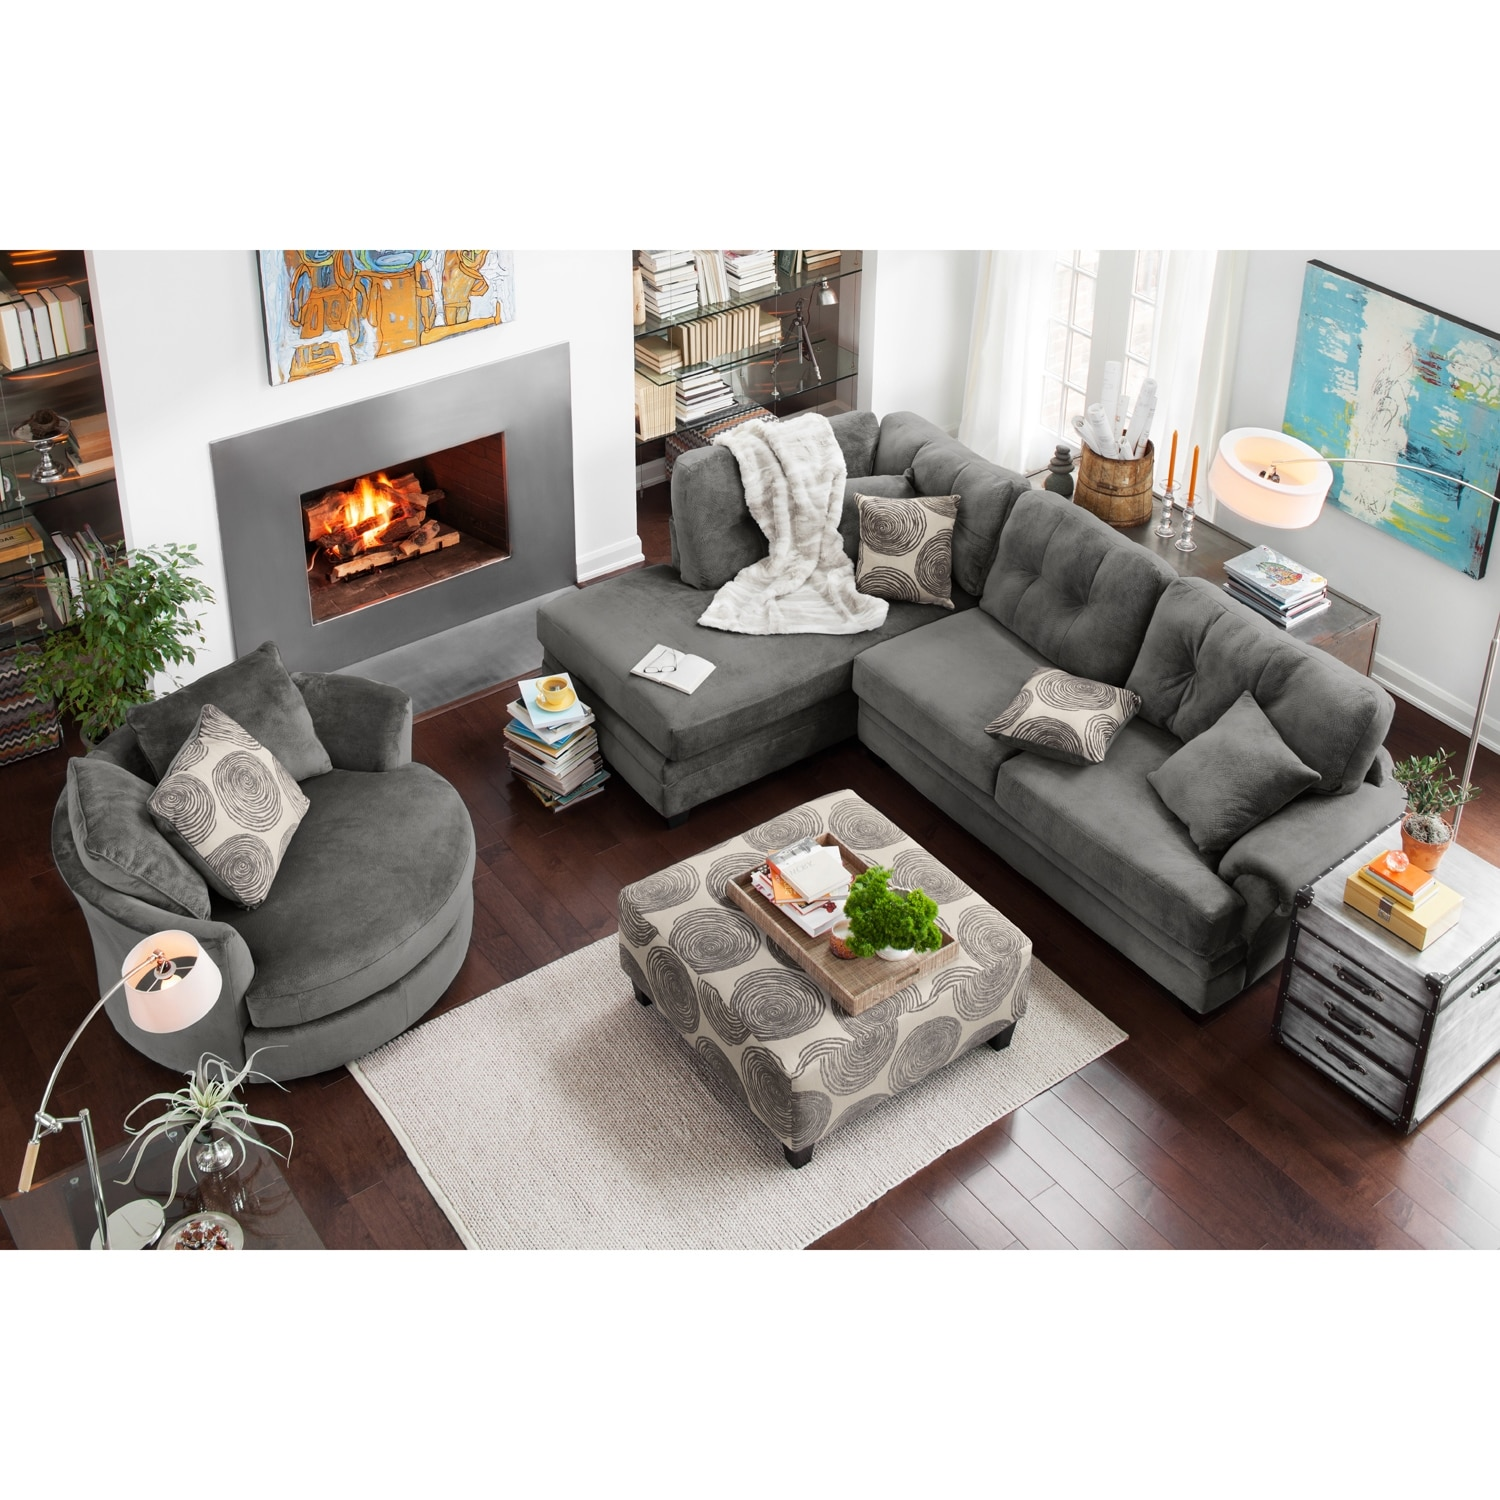 Cordelle 2 Piece Left Facing Chaise Sectional Gray Value City Furniture And Mattresses